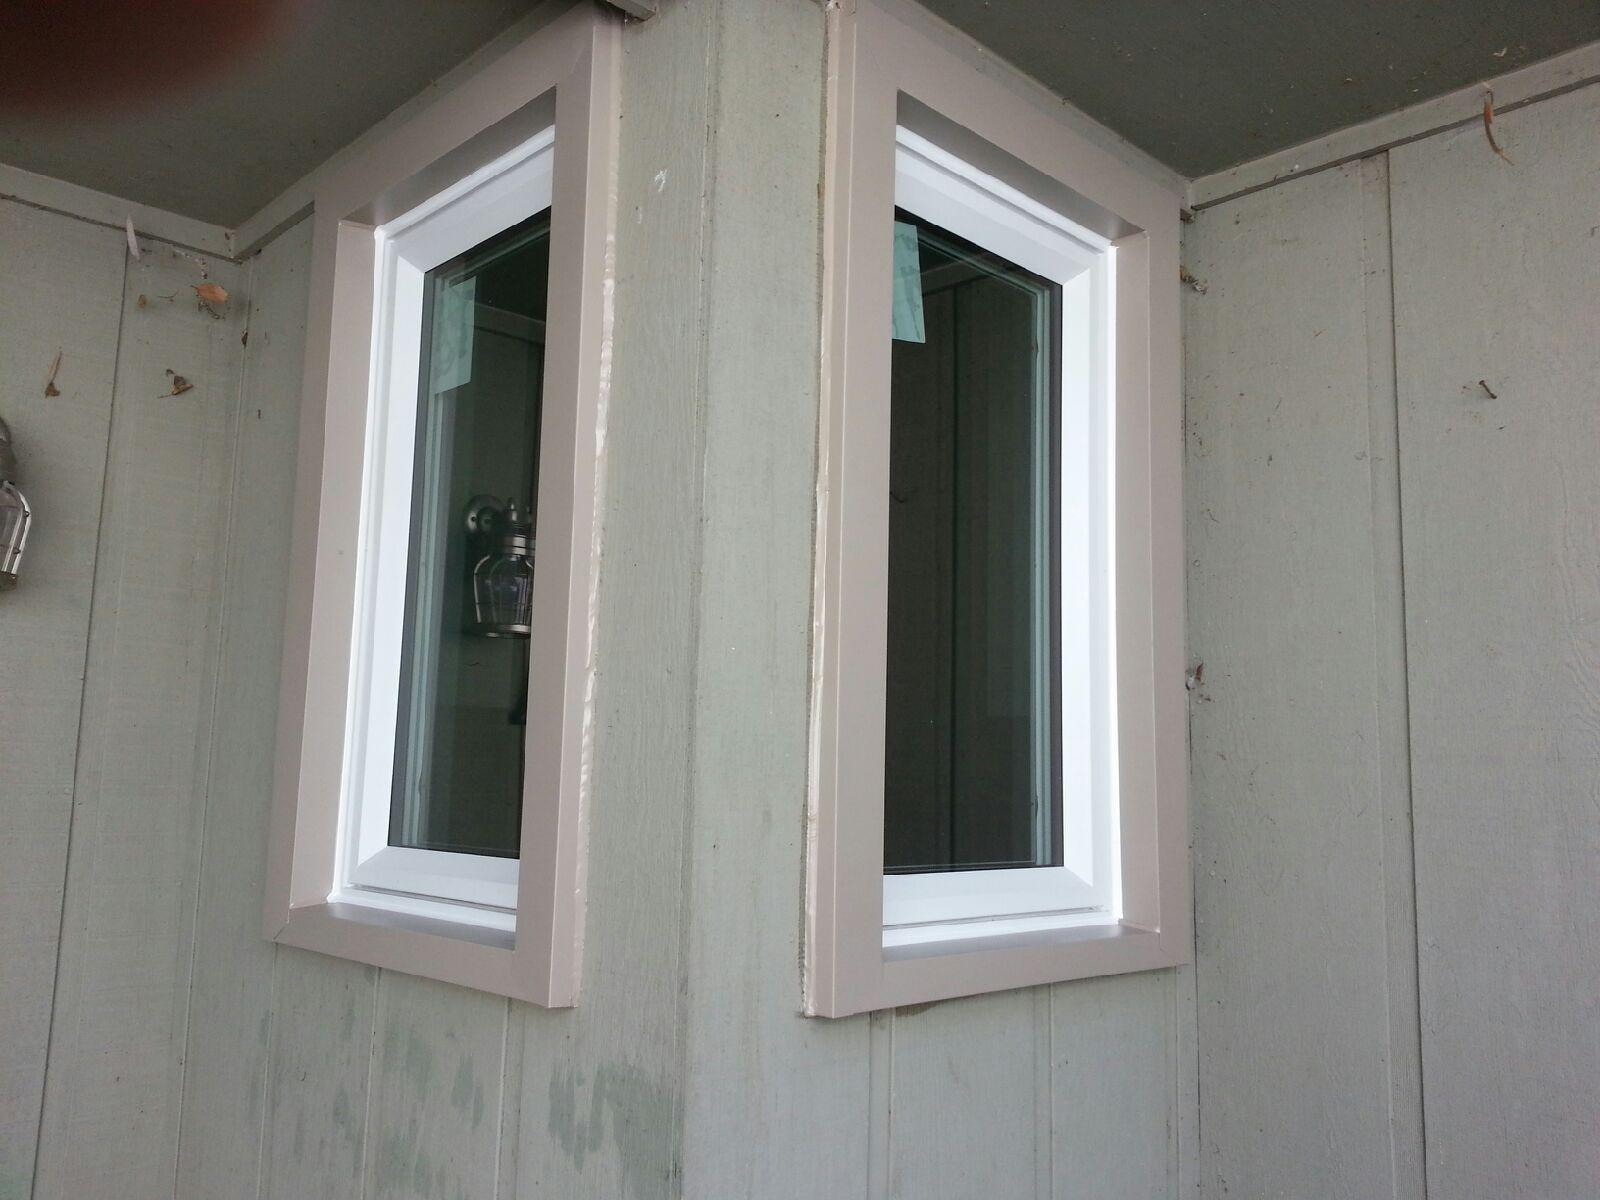 Single casement windows